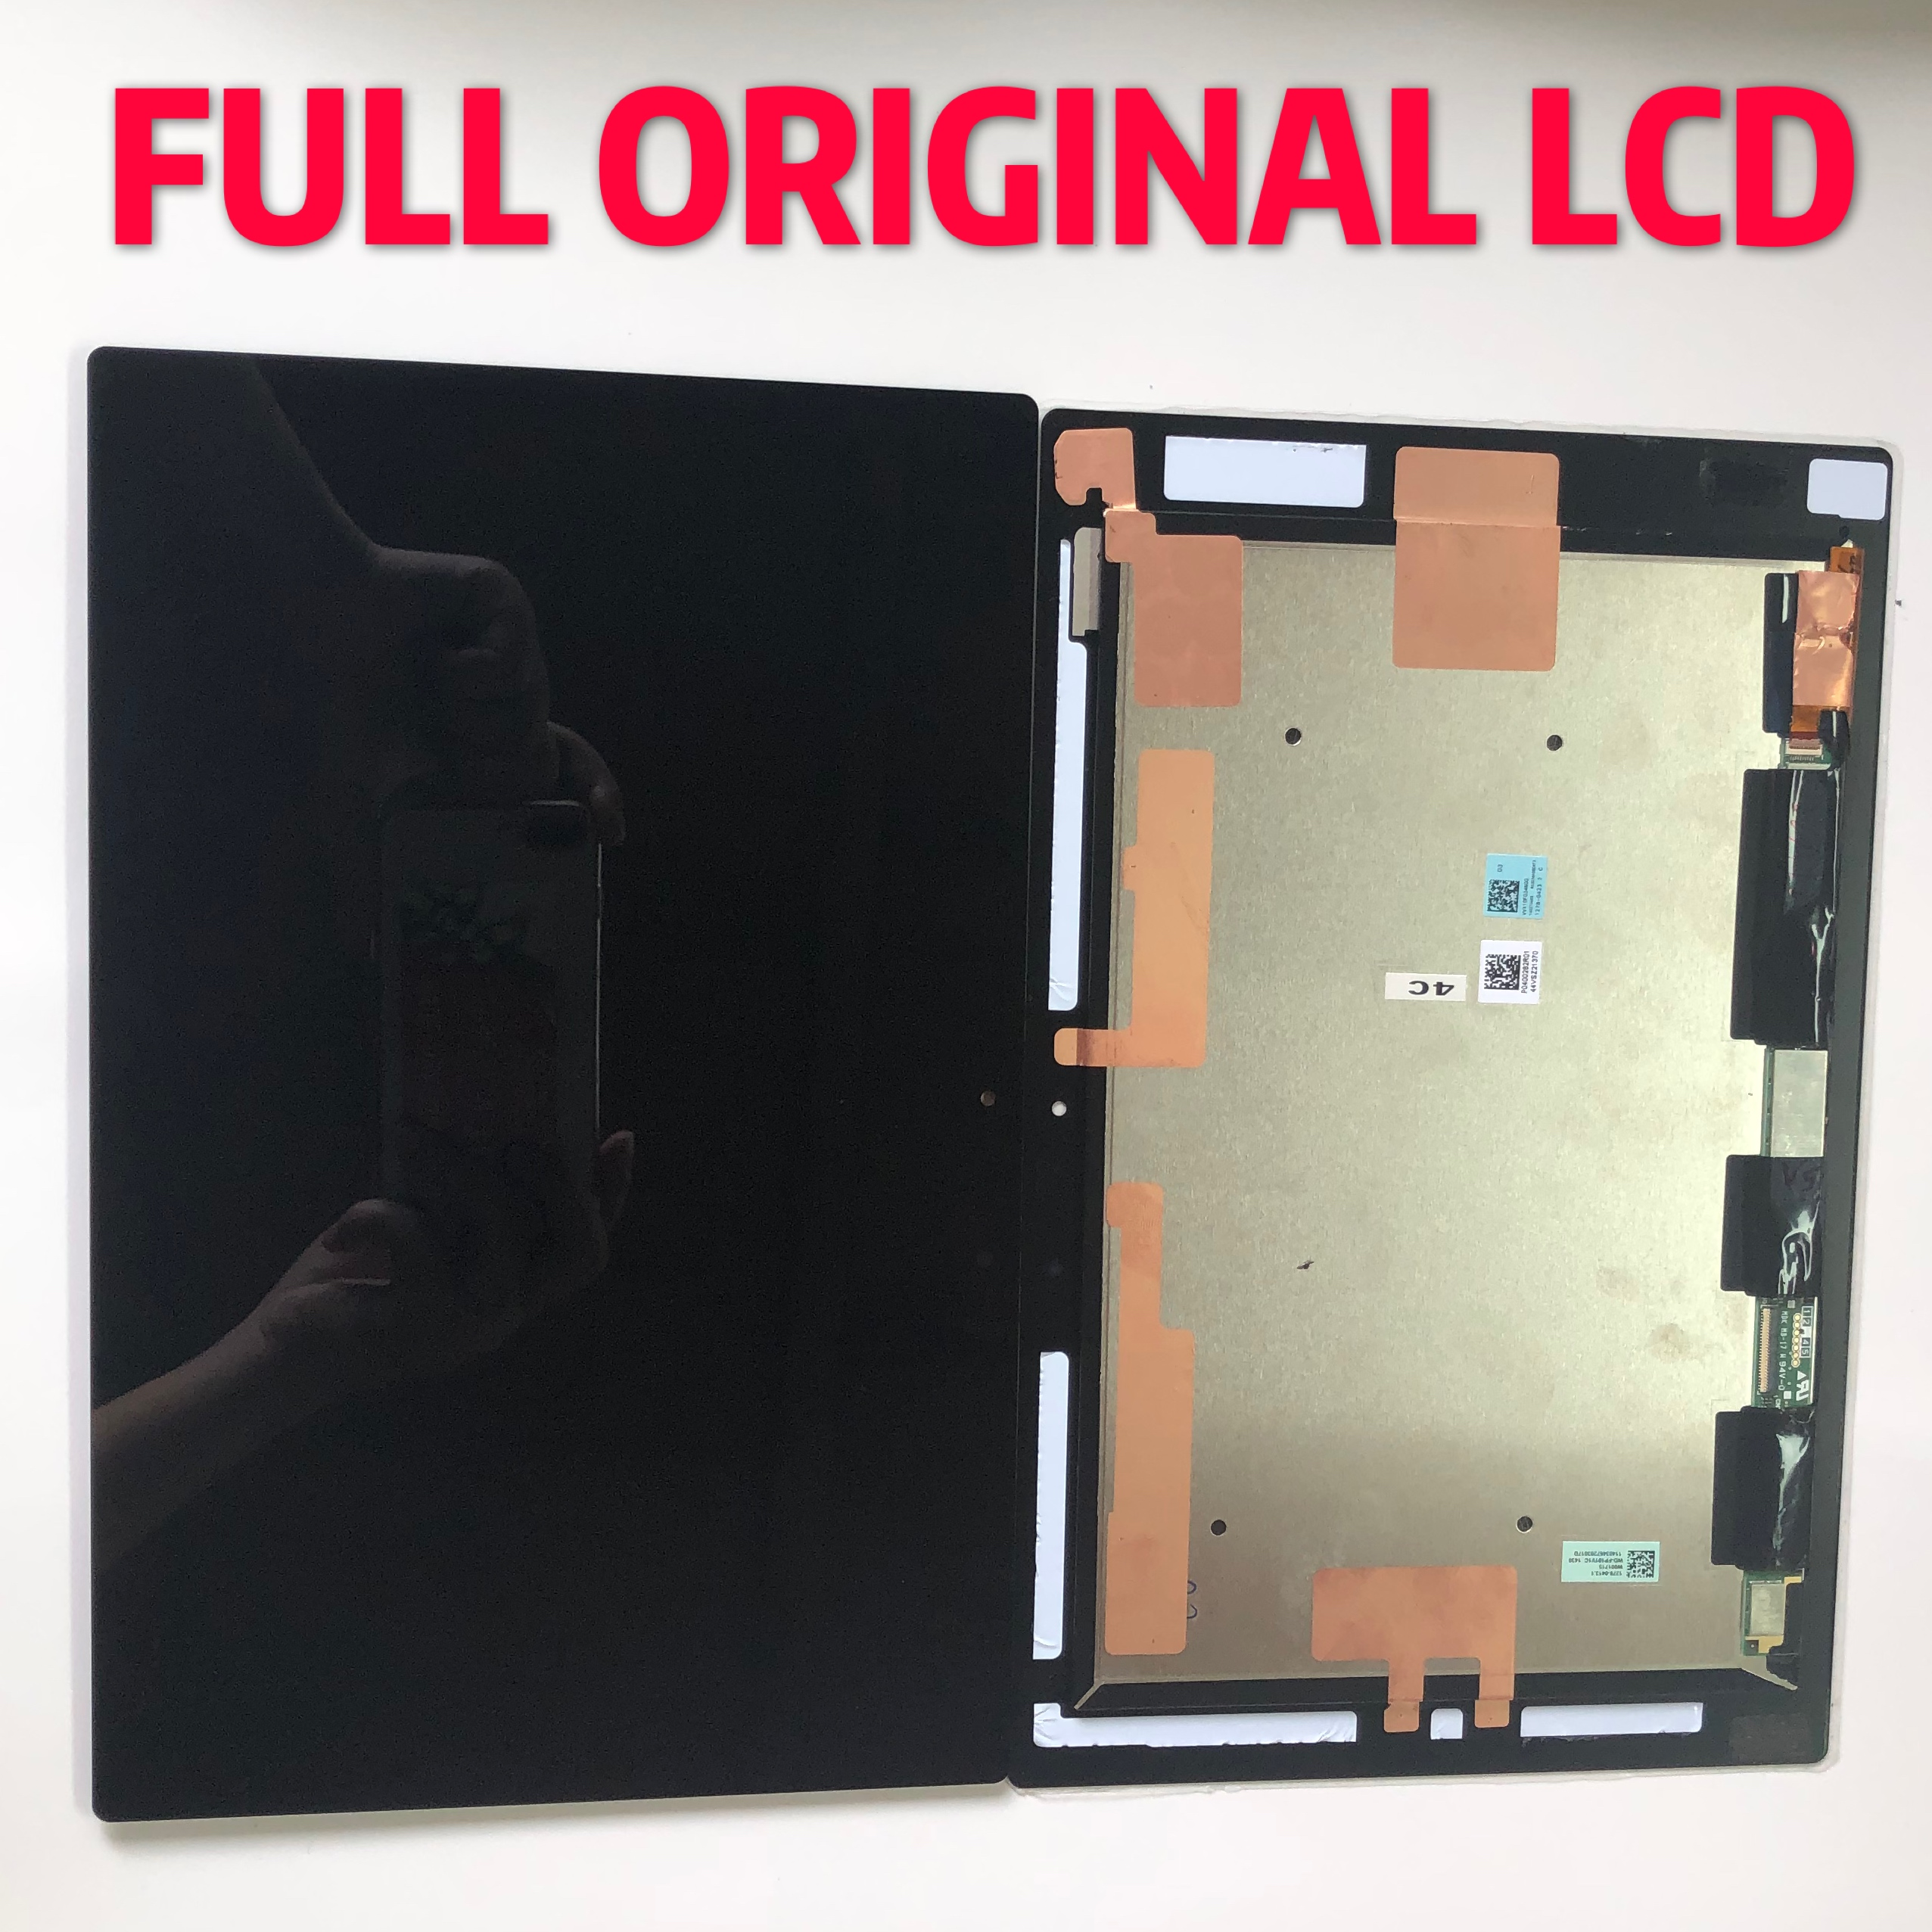 10.1 Inch For Sony Xperia Tablet Z2 SGP511 SGP512 SGP521 SGP541 Touch Screen Digitizer Glass Lcd Display Assembly Free Shipping